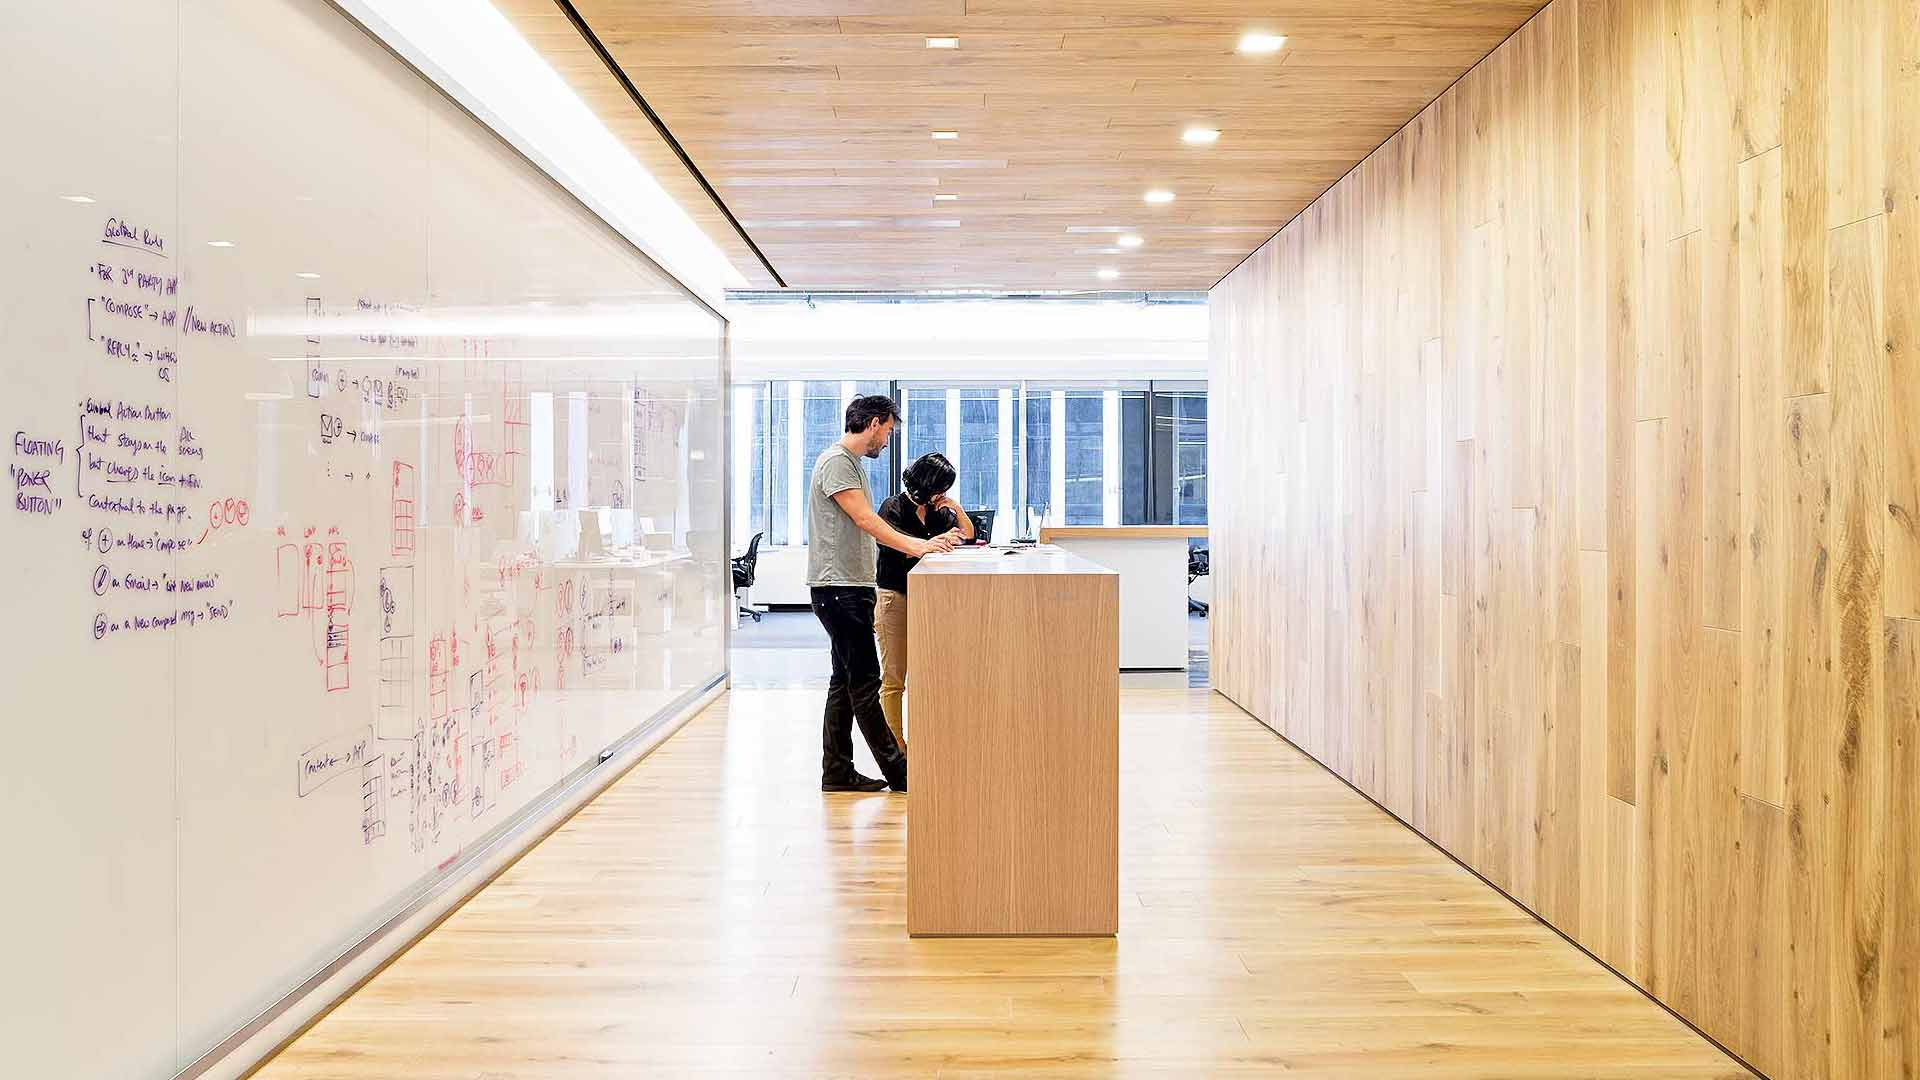 Whiteboard walls for small office spaces.